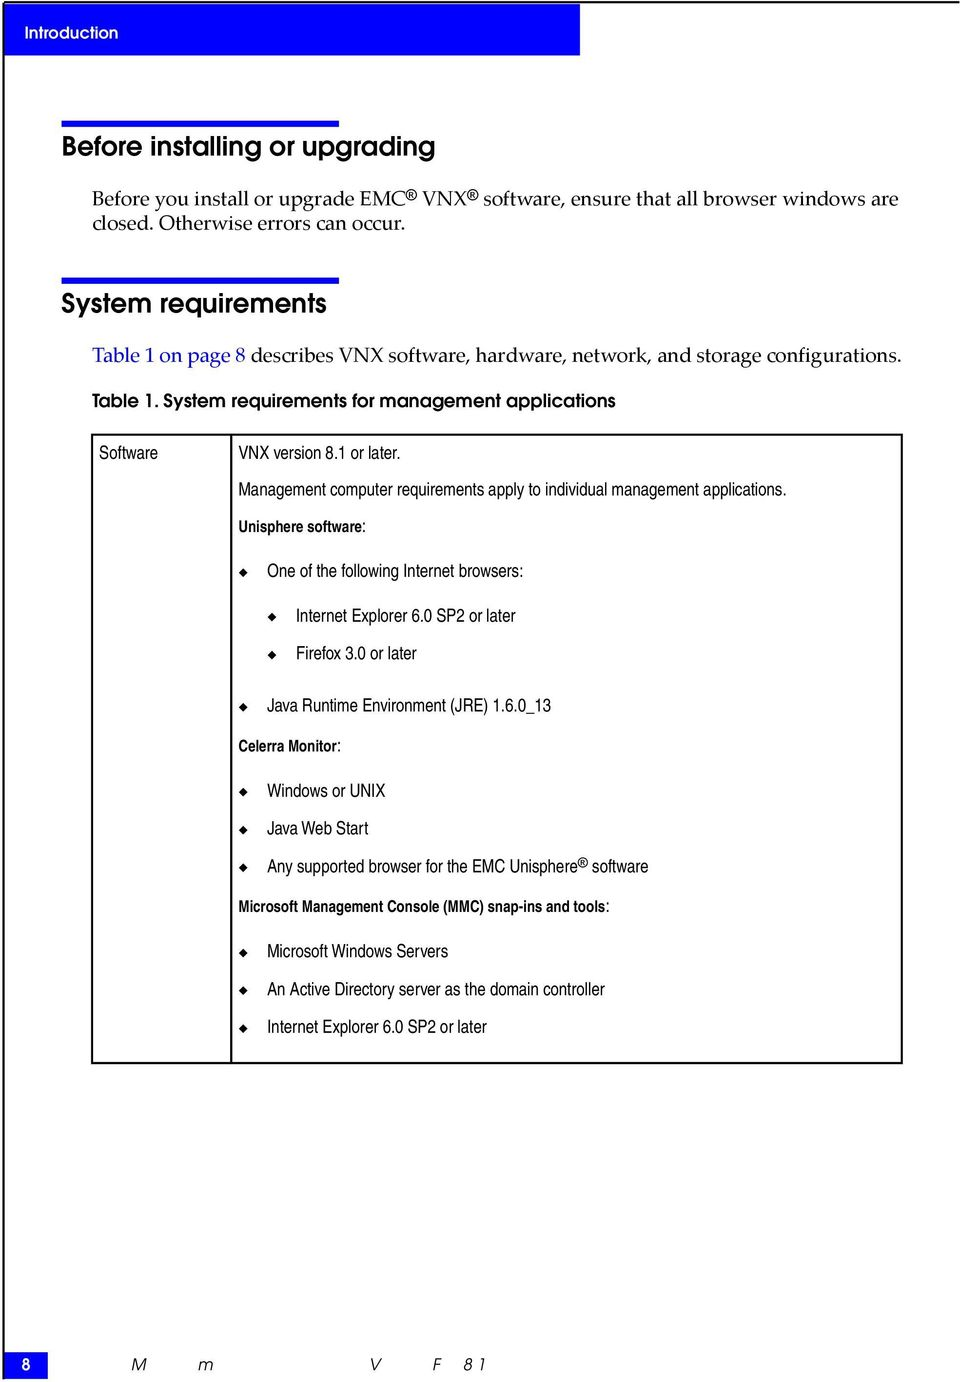 Management computer requirements apply to individual management applications. Unisphere software: One of the following Internet browsers: Internet Explorer 6.0 SP2 or later Firefox 3.